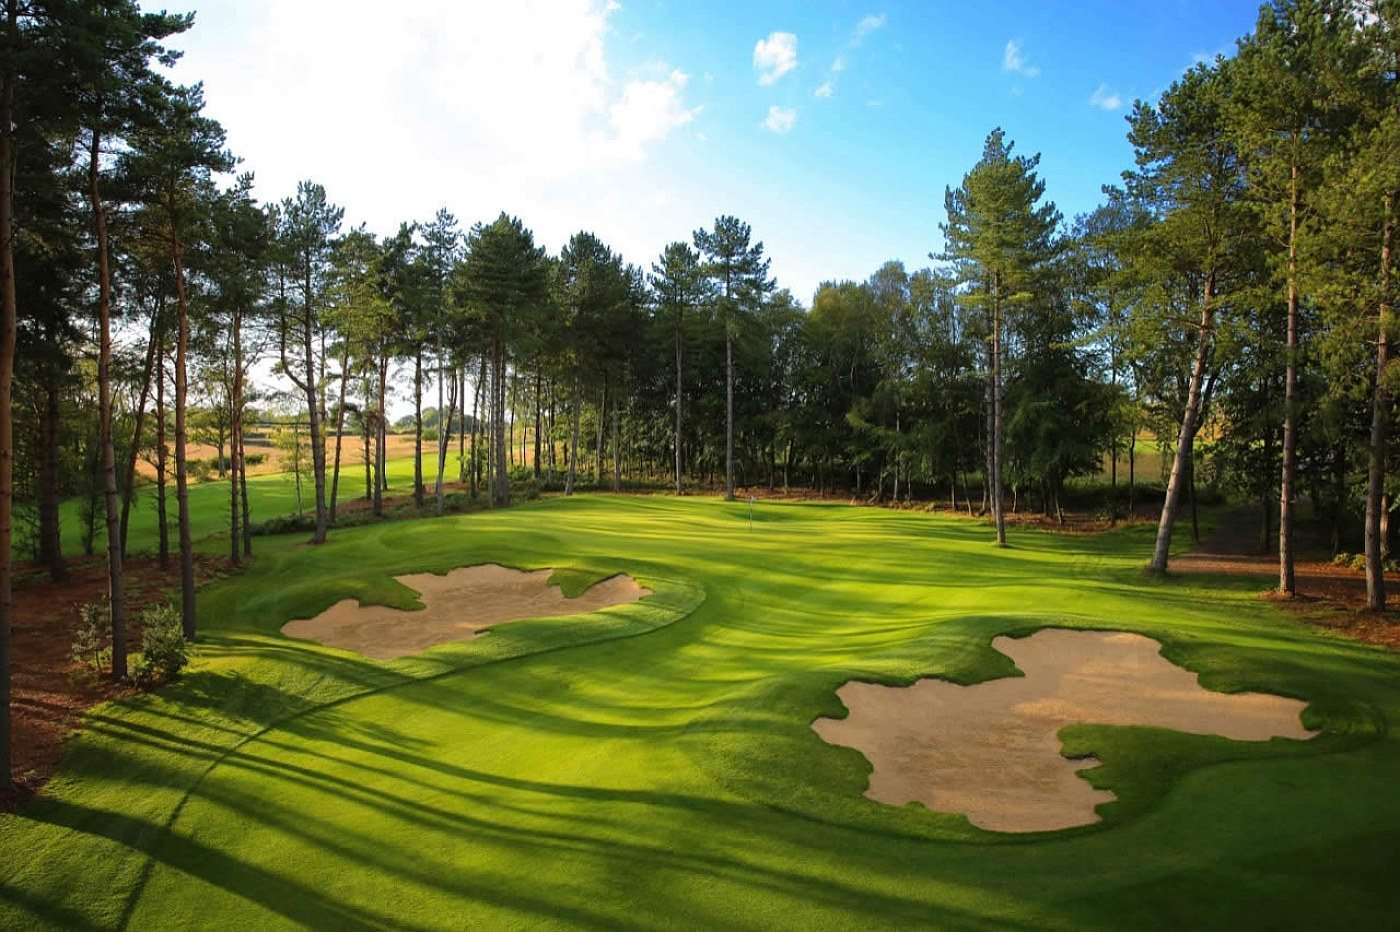 Centurion Club, Ideally located to the west of St Albans, The Centurion Club will provide its members with a golfing experience unrivalled quality and comfort.